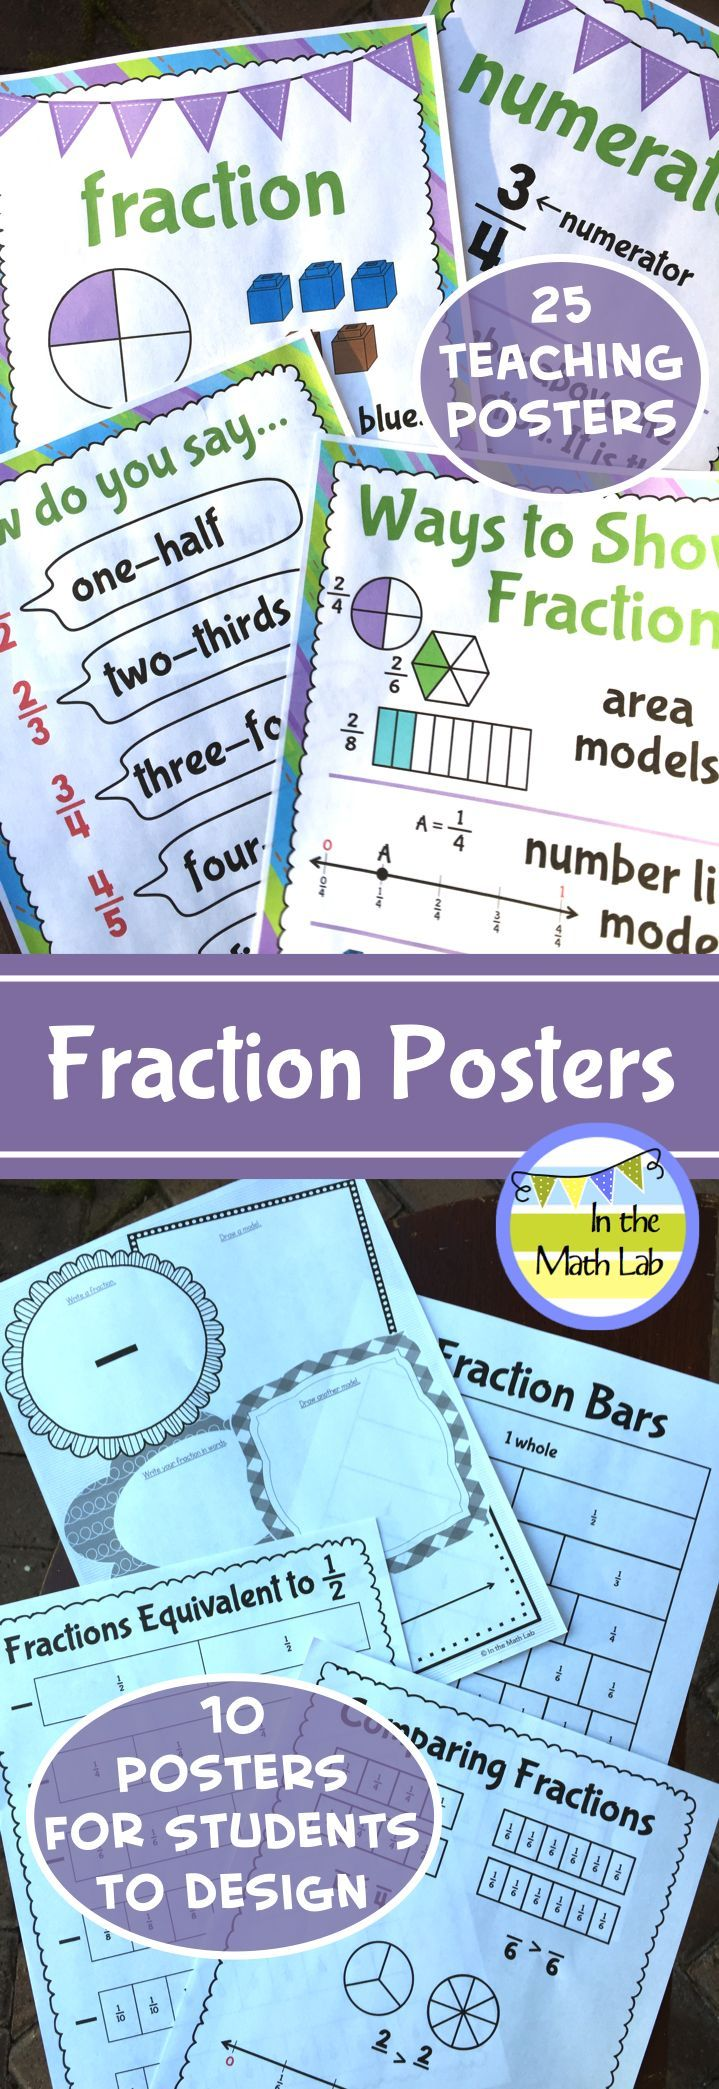 415 best Math - Fractions images on Pinterest | Math fractions, 3rd ...